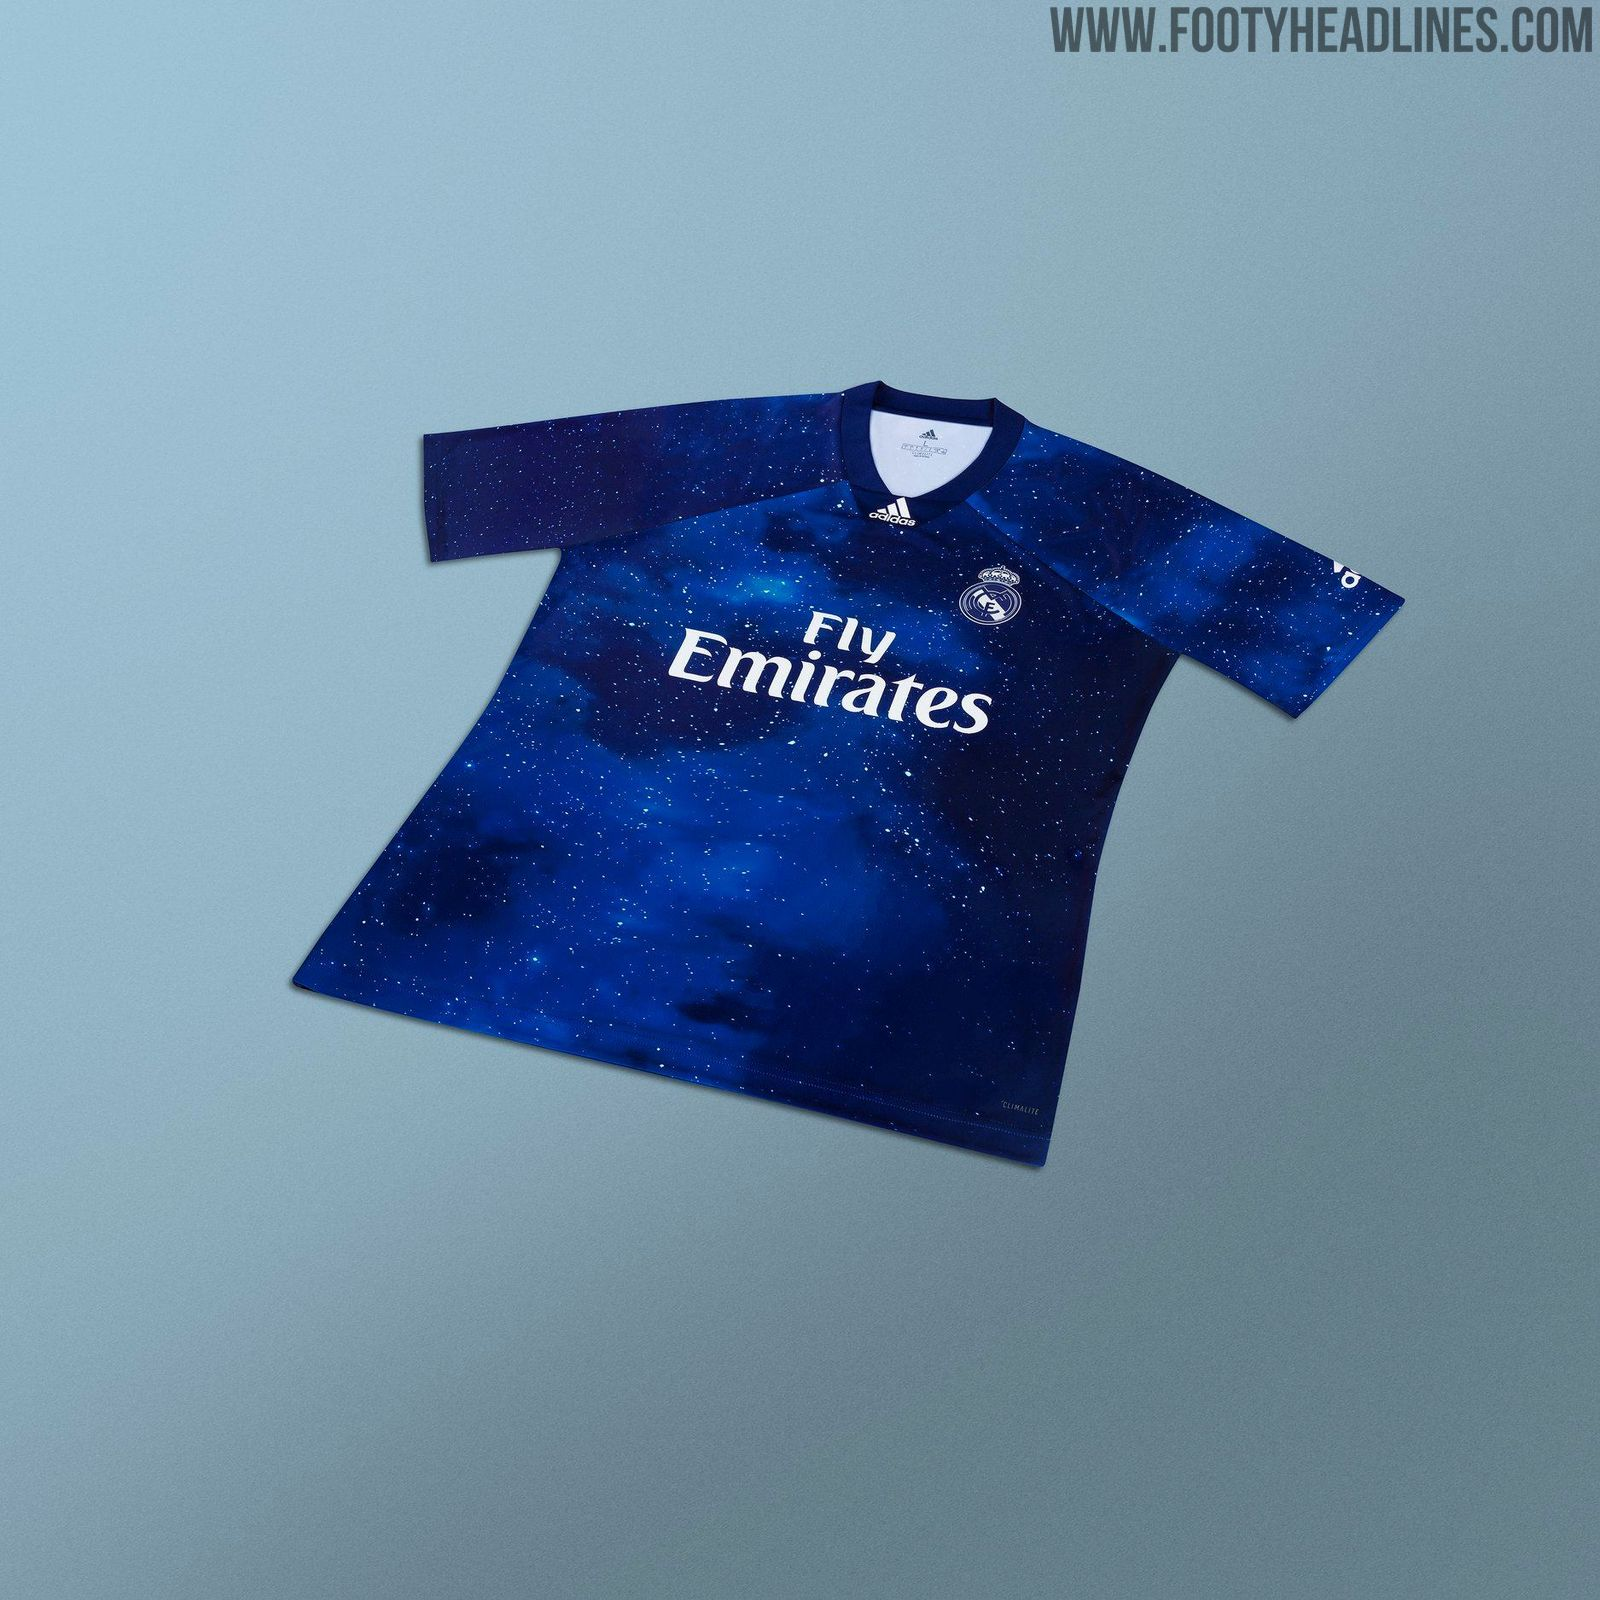 the best attitude a9f2b d60bc Outstanding Adidas x EA Sports Real Madrid Kit Released ...